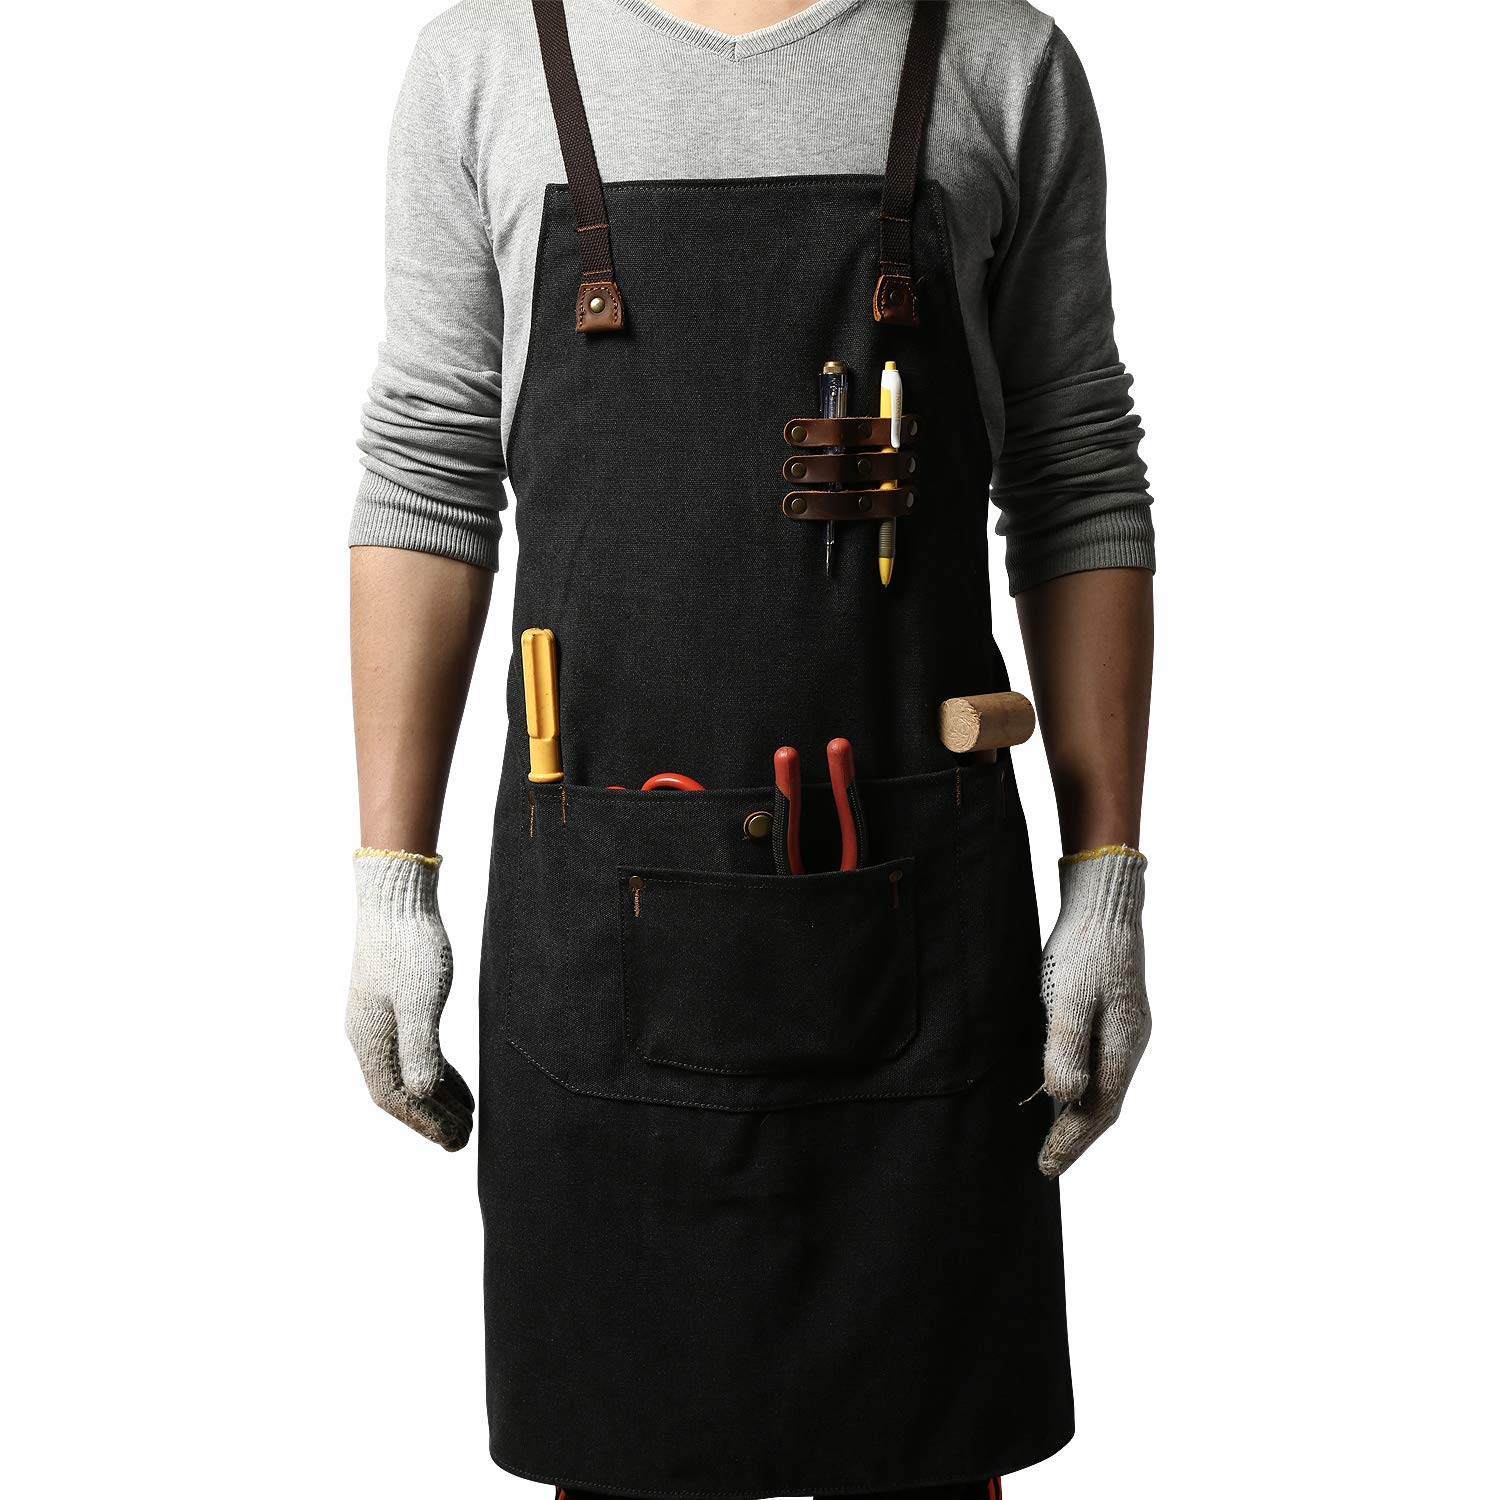 G-FAVOR Work Apron Canvas Welding Tool Woodworking Apron Durable Heavy Duty with Tool Pockets for Men Women Cross Back Straps Adjustable S to XXL(Black)